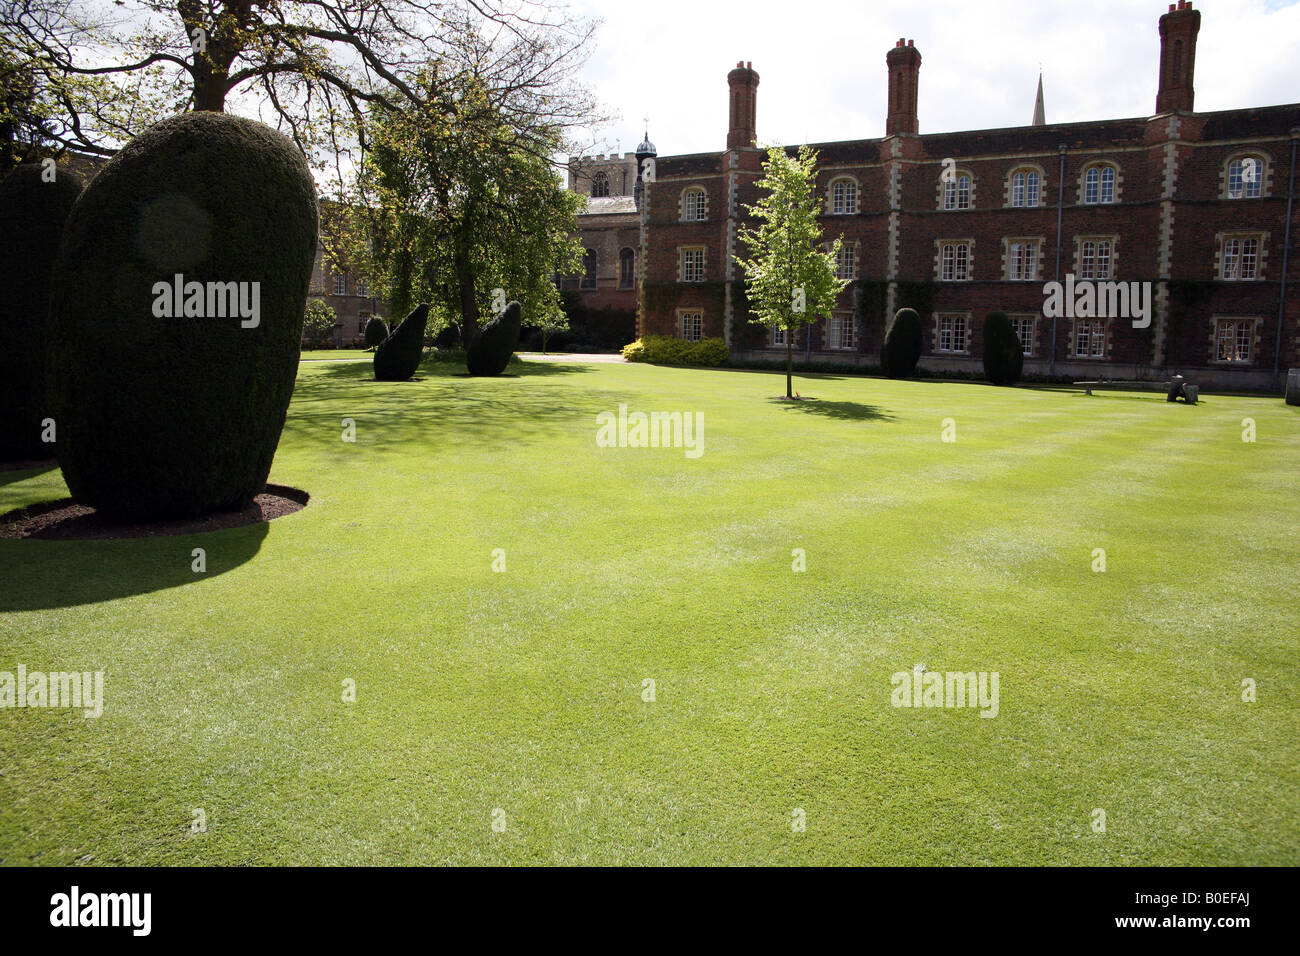 Well-maintained lawn at Jesus College, Cambridge Stock Photo